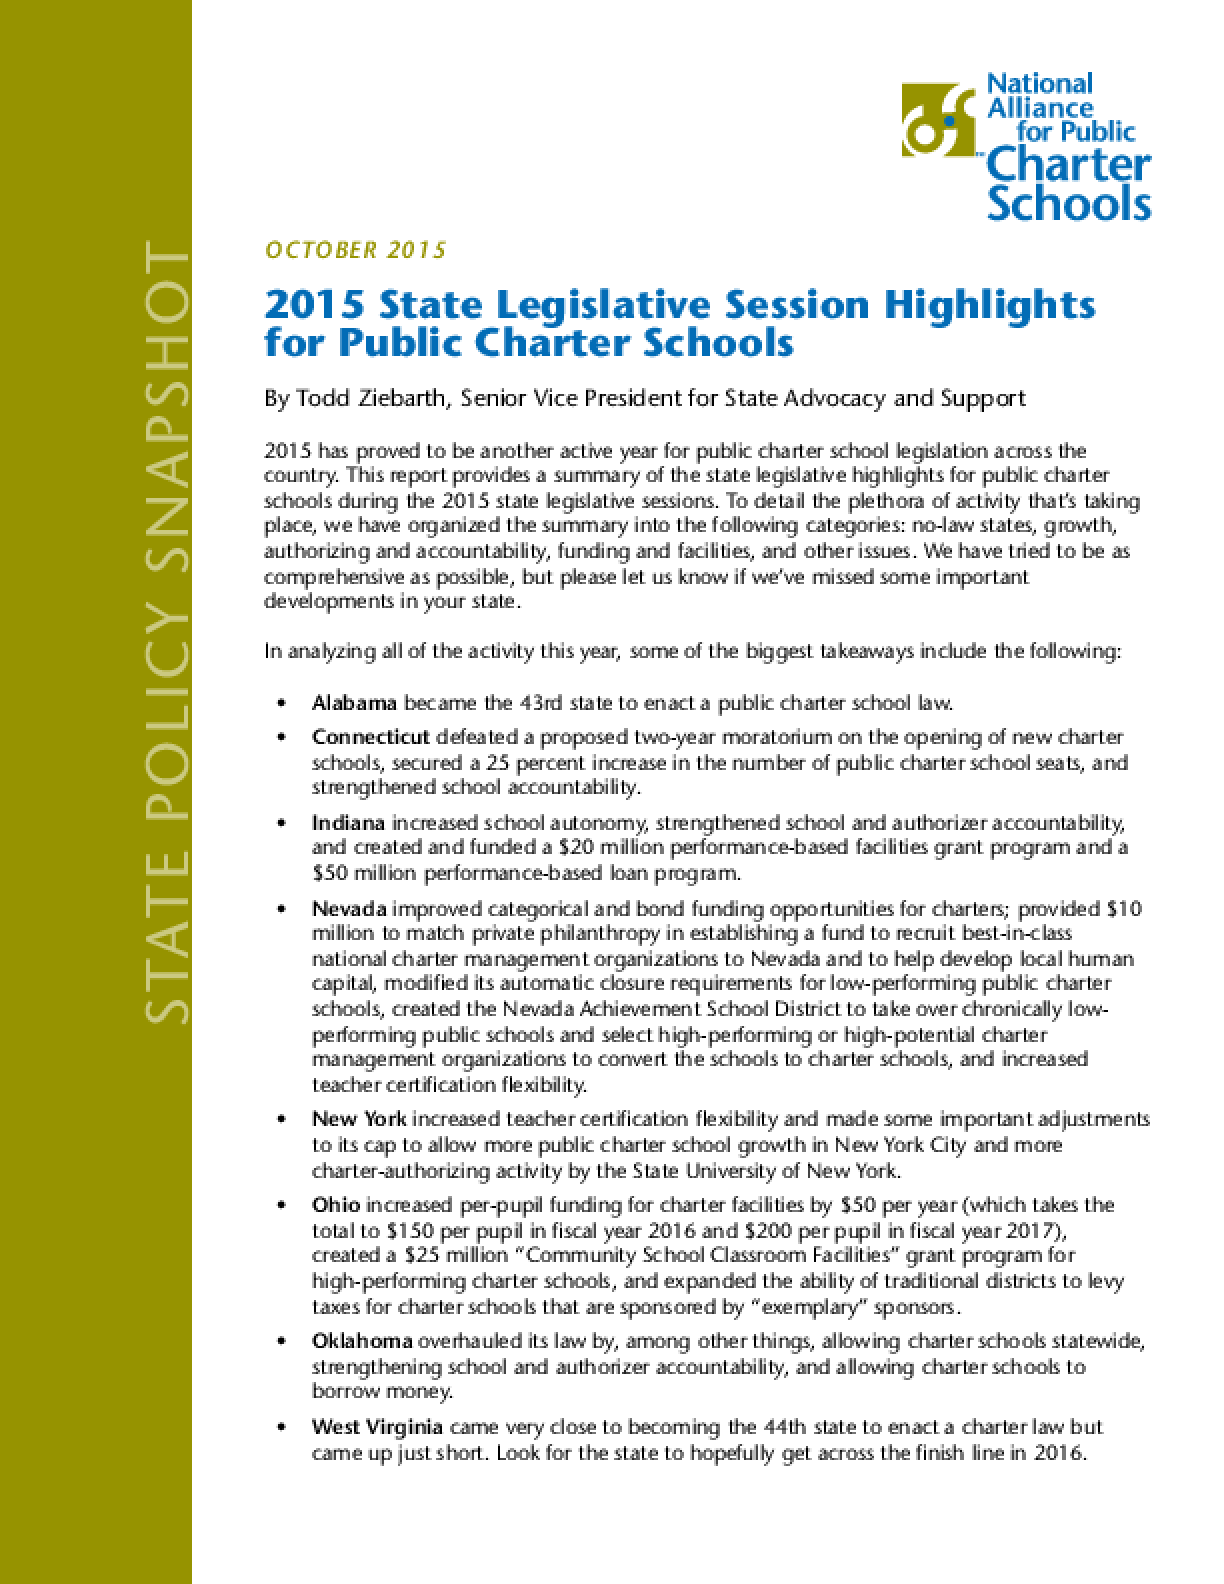 2015 State Legislative Session Highlights for Public Charter Schools